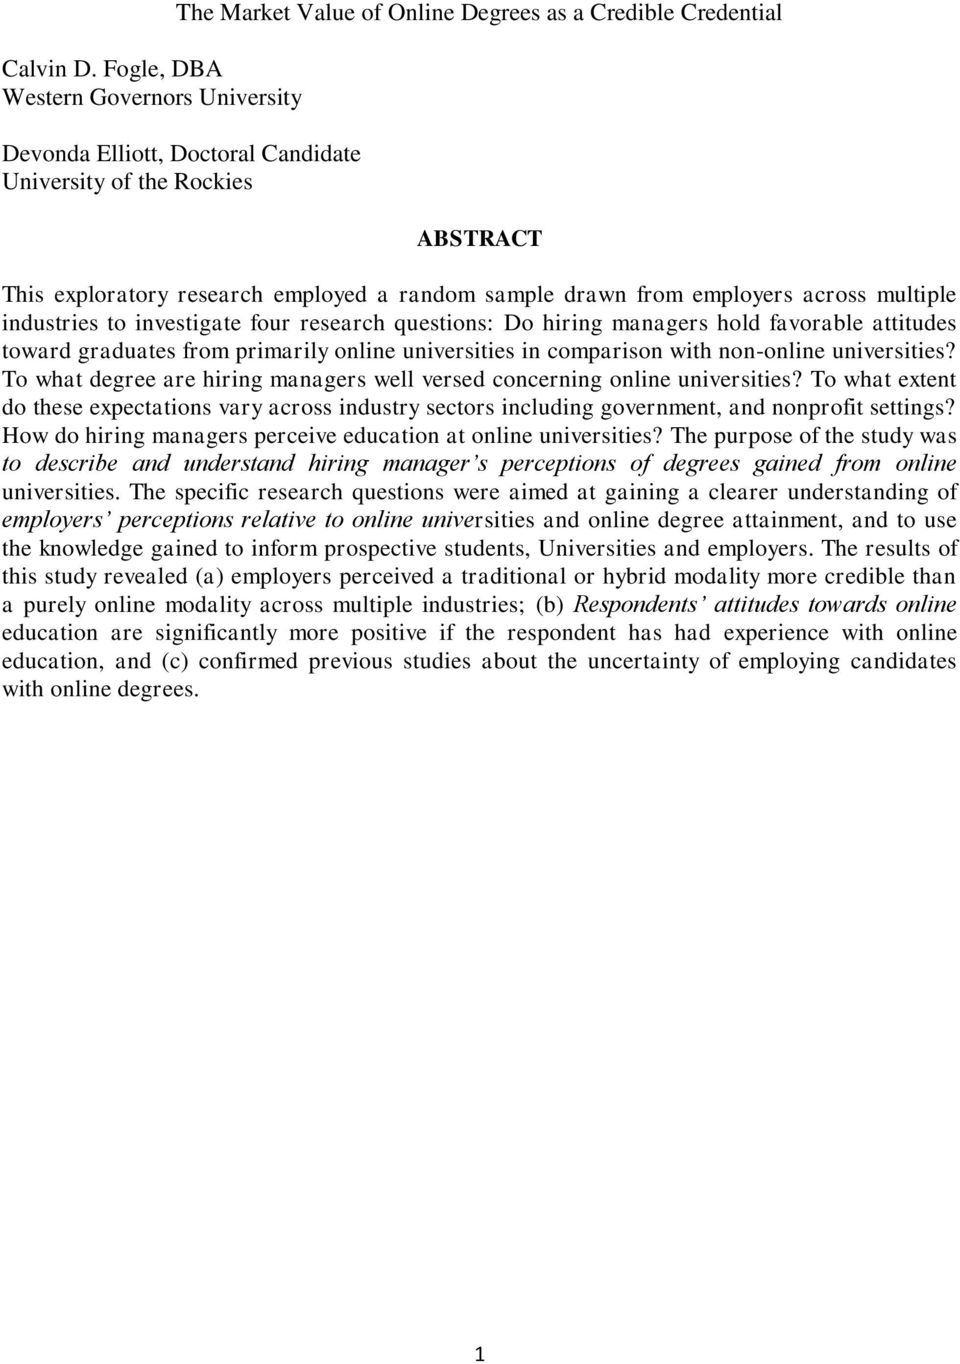 employed a random sample drawn from employers across multiple industries to investigate four research questions: Do hiring managers hold favorable attitudes toward graduates from primarily online